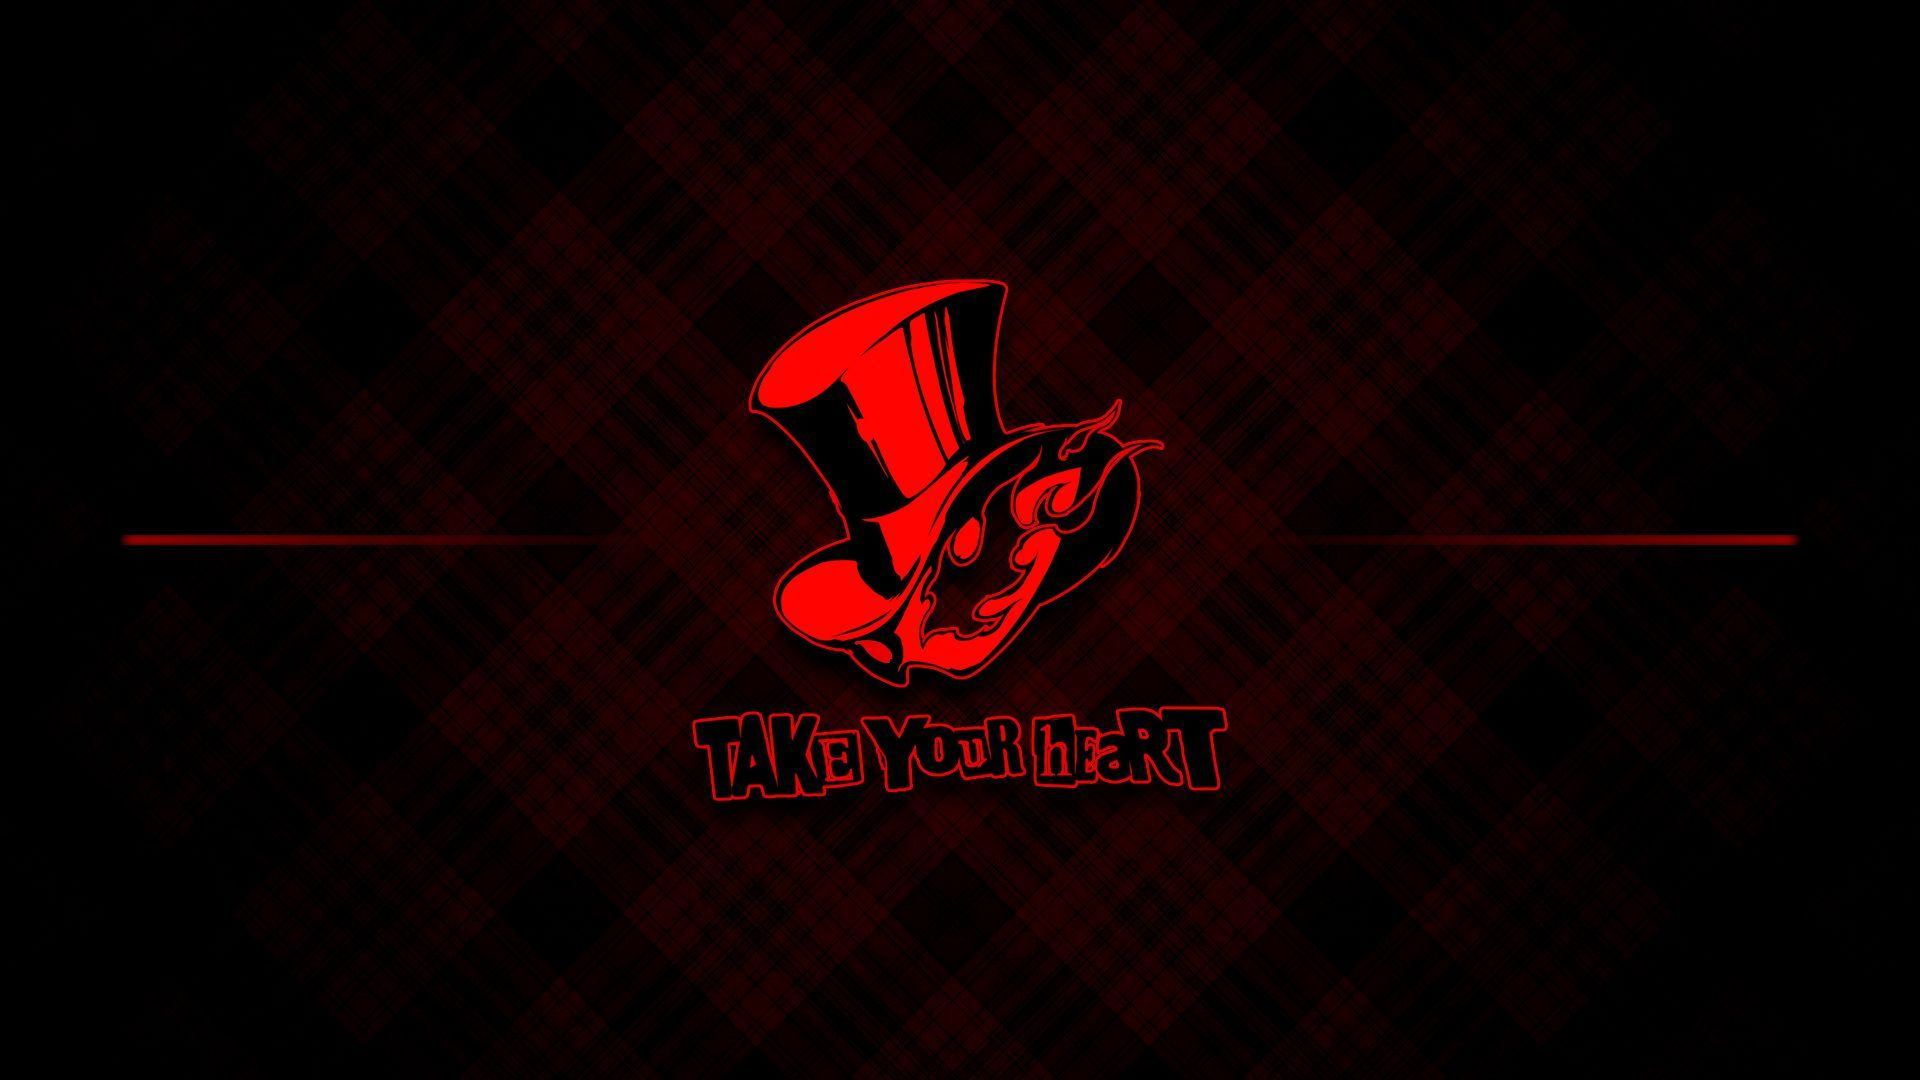 Persona 5 Logo Wallpapers Top Free Persona 5 Logo Backgrounds Wallpaperaccess